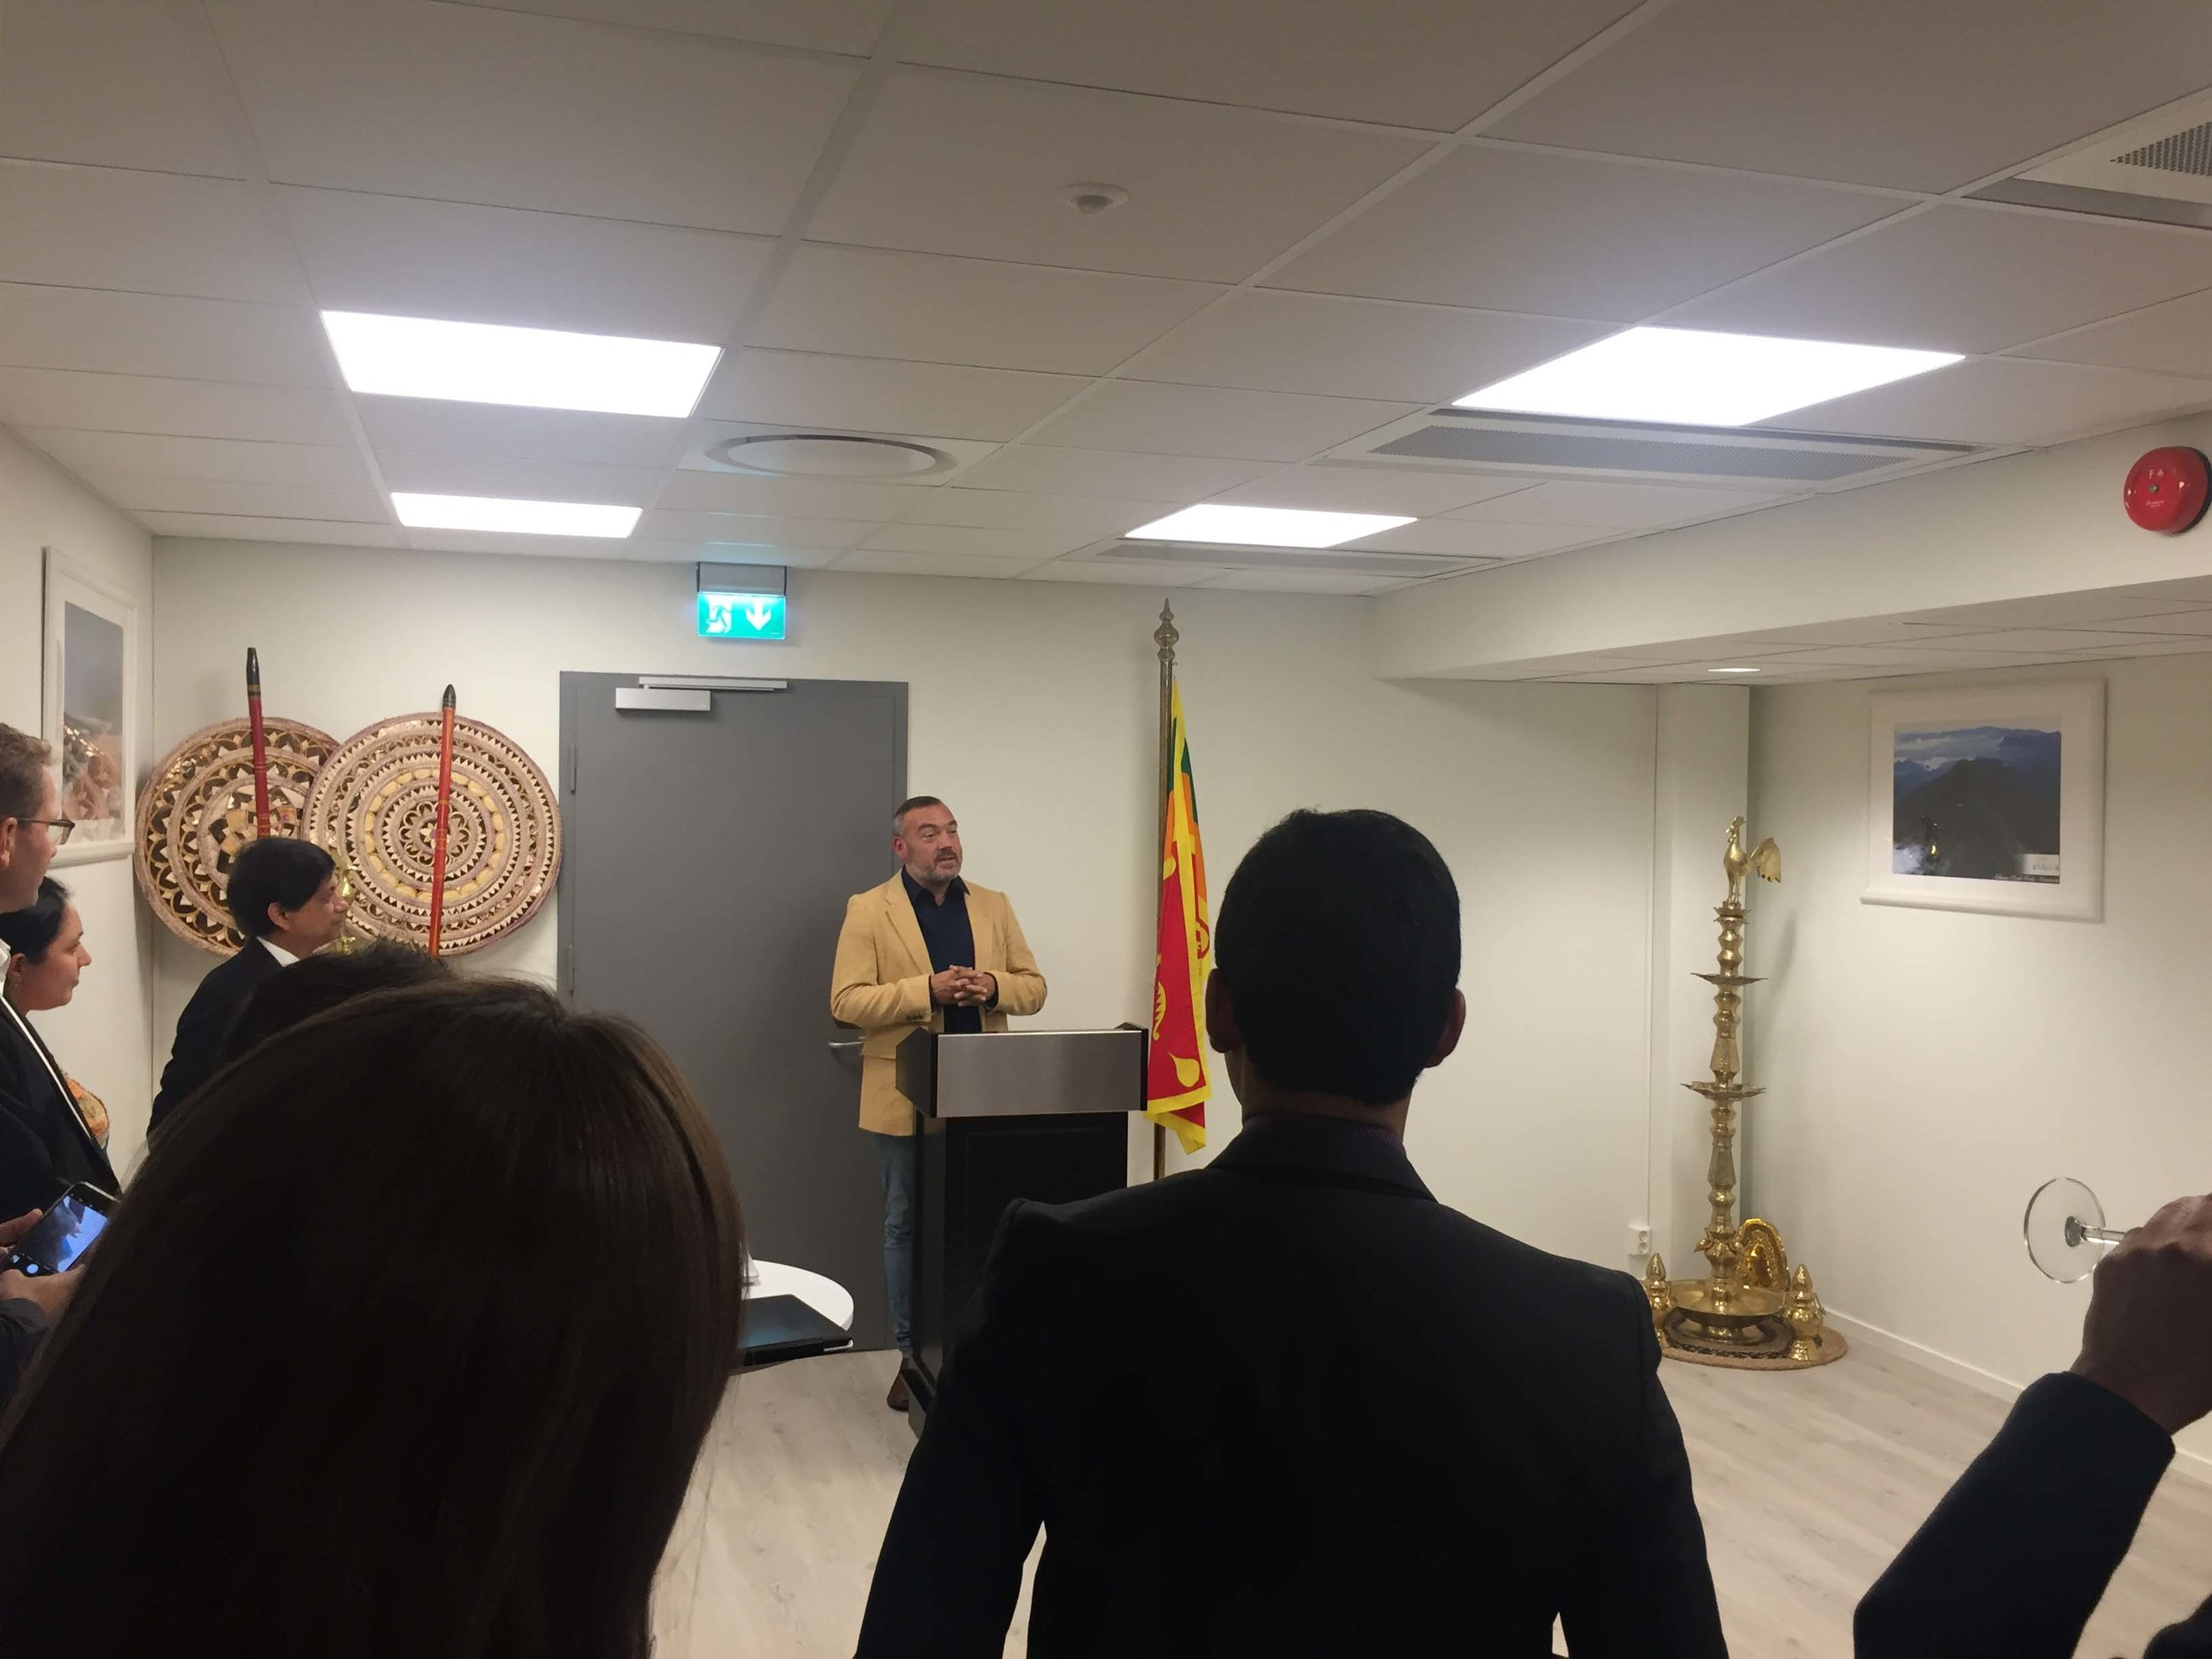 Invited guest at the Embassy of Sri Lanka - 28.09.2017 - Skøyen, Oslo - Tin was cordially invited by the Ambassador of Sri Lanka, Jayantha Palipane, to the meet the Sri Lankan delegate of startups and participants at the Oslo Innovation Week.Other invited guests were TIQRI, ICT Norway, Oslo municipality, officials from Houston, etc. Fredrik Syversen,director of business development at ICT Norway in his mighty fine blazer, holding a speech about something important.